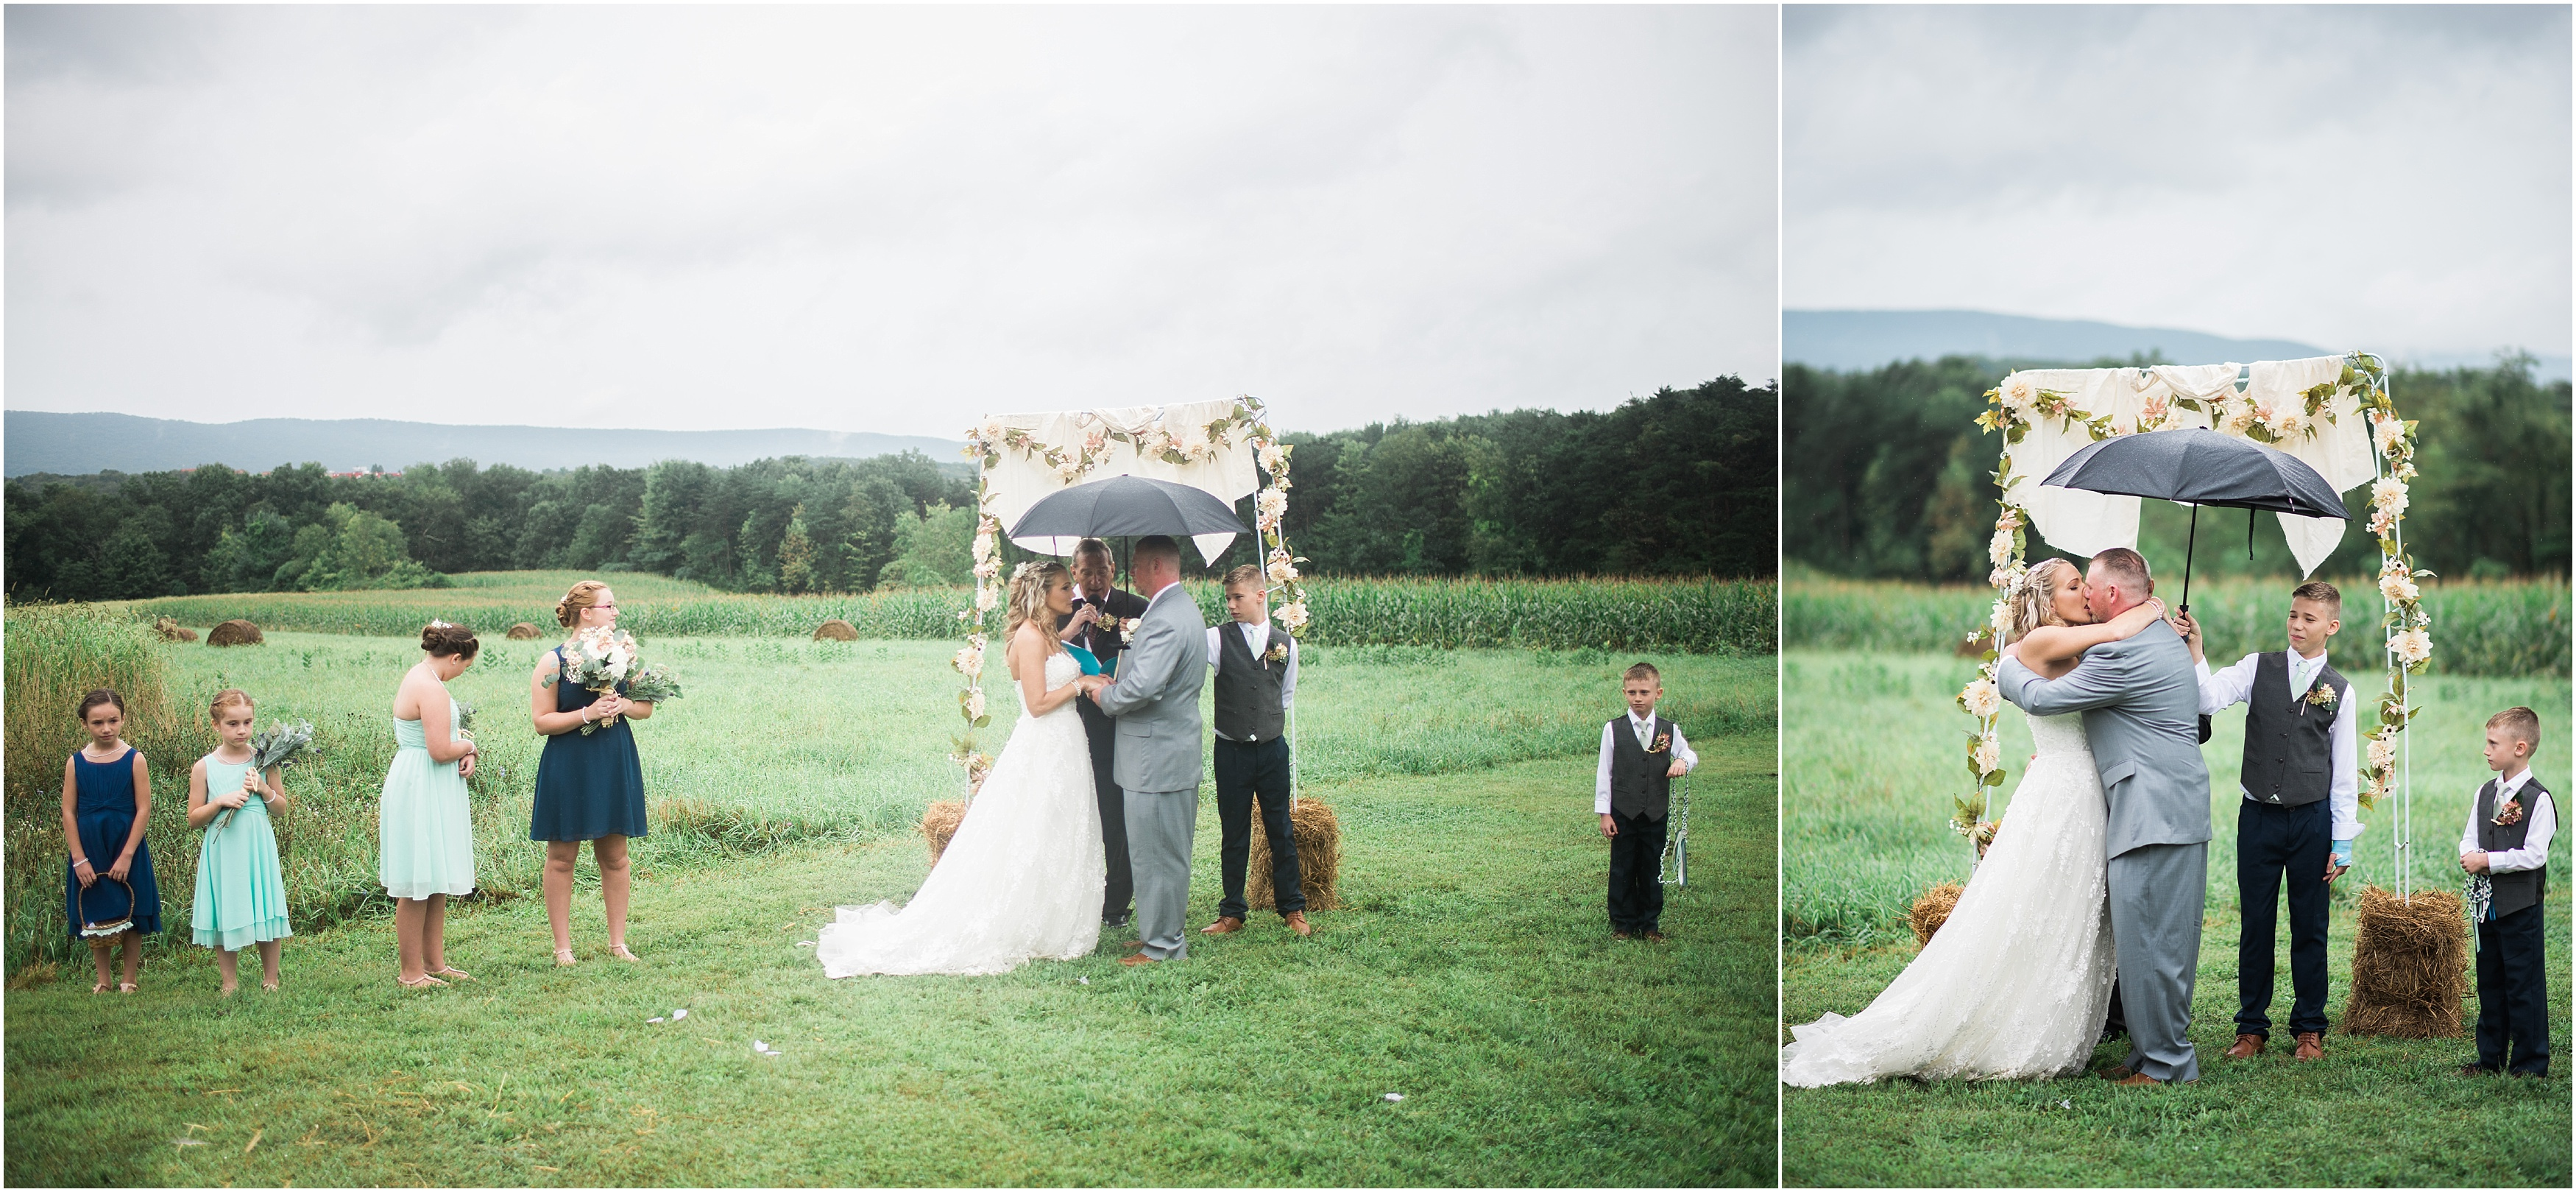 NEPA Wedding and Destination Photographer | Tasha Puckey Photography